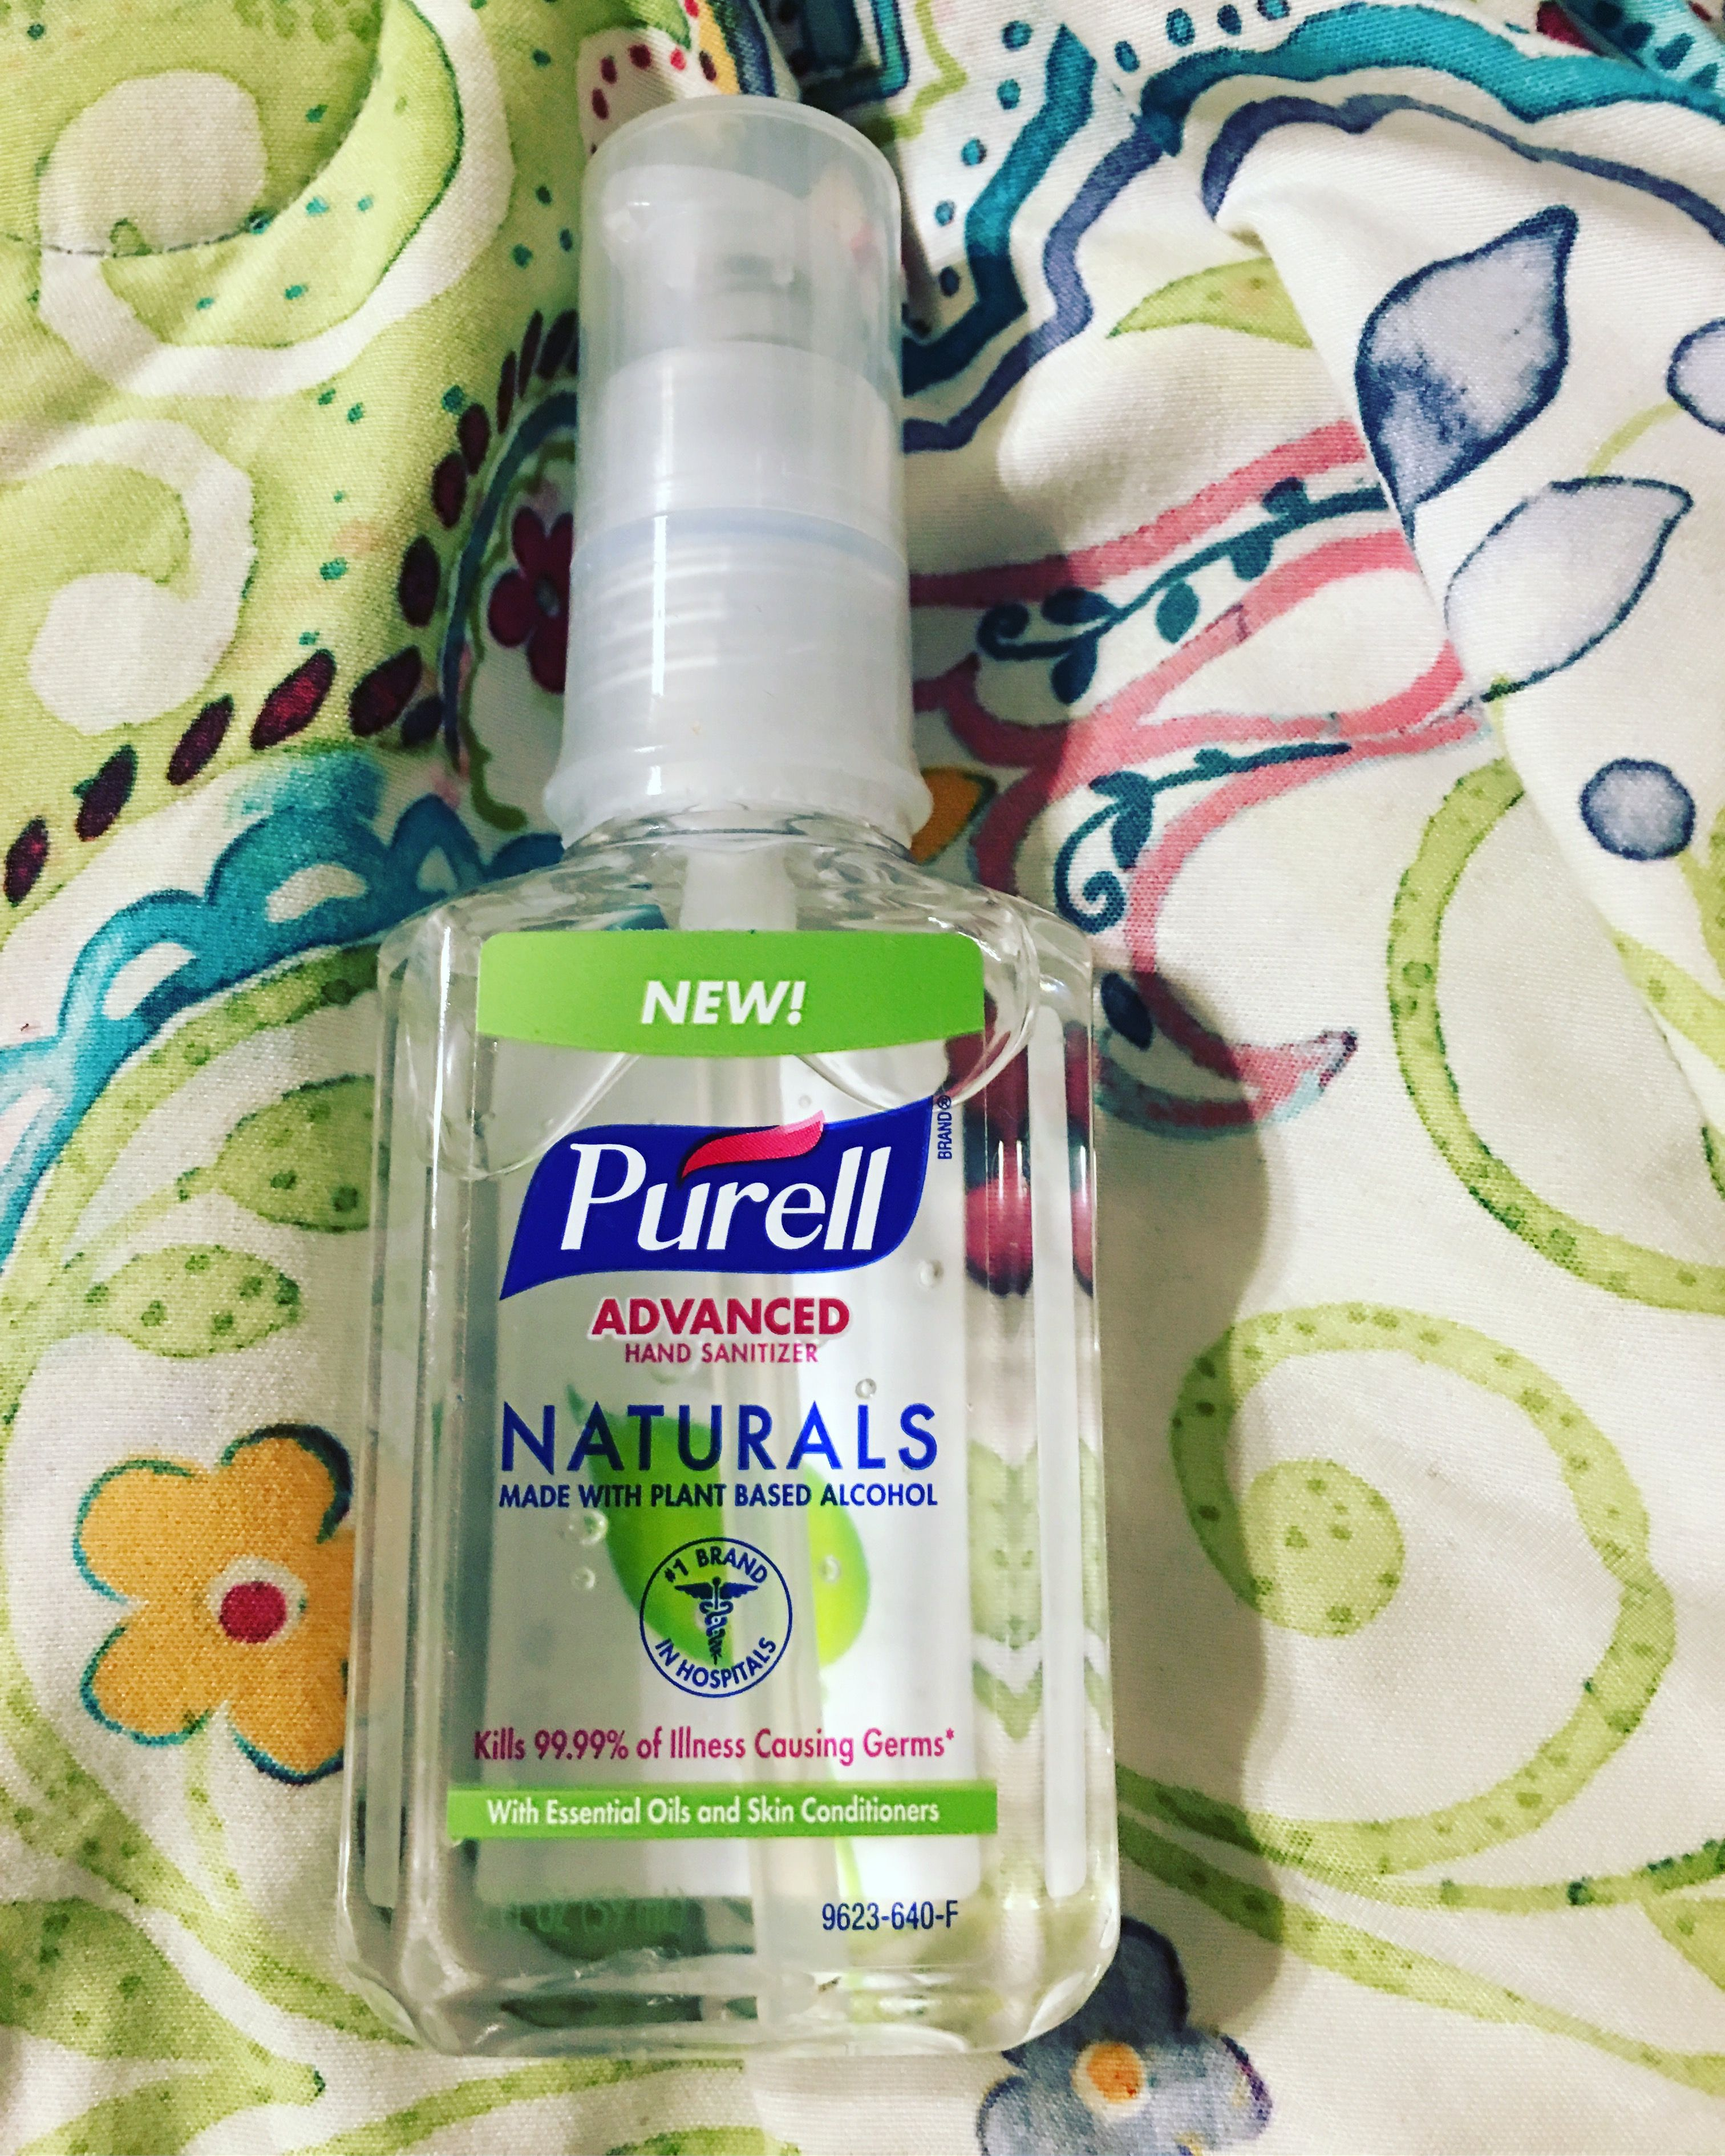 Great product to keep in your purse especially during the flu season! #PURELLNaturals @influenster